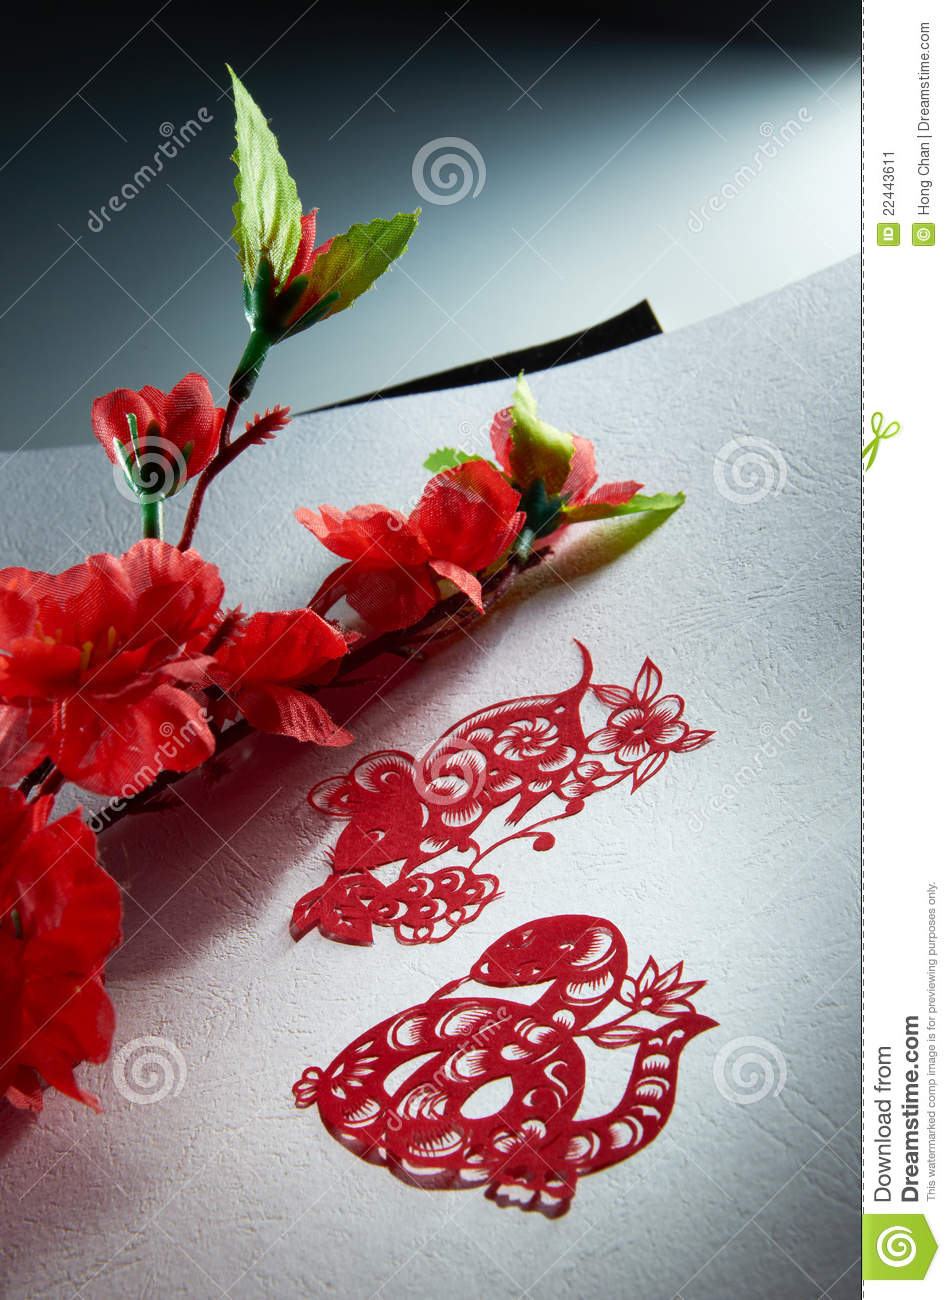 More similar stock images of ` Chinese Lunar Paper Cutting `